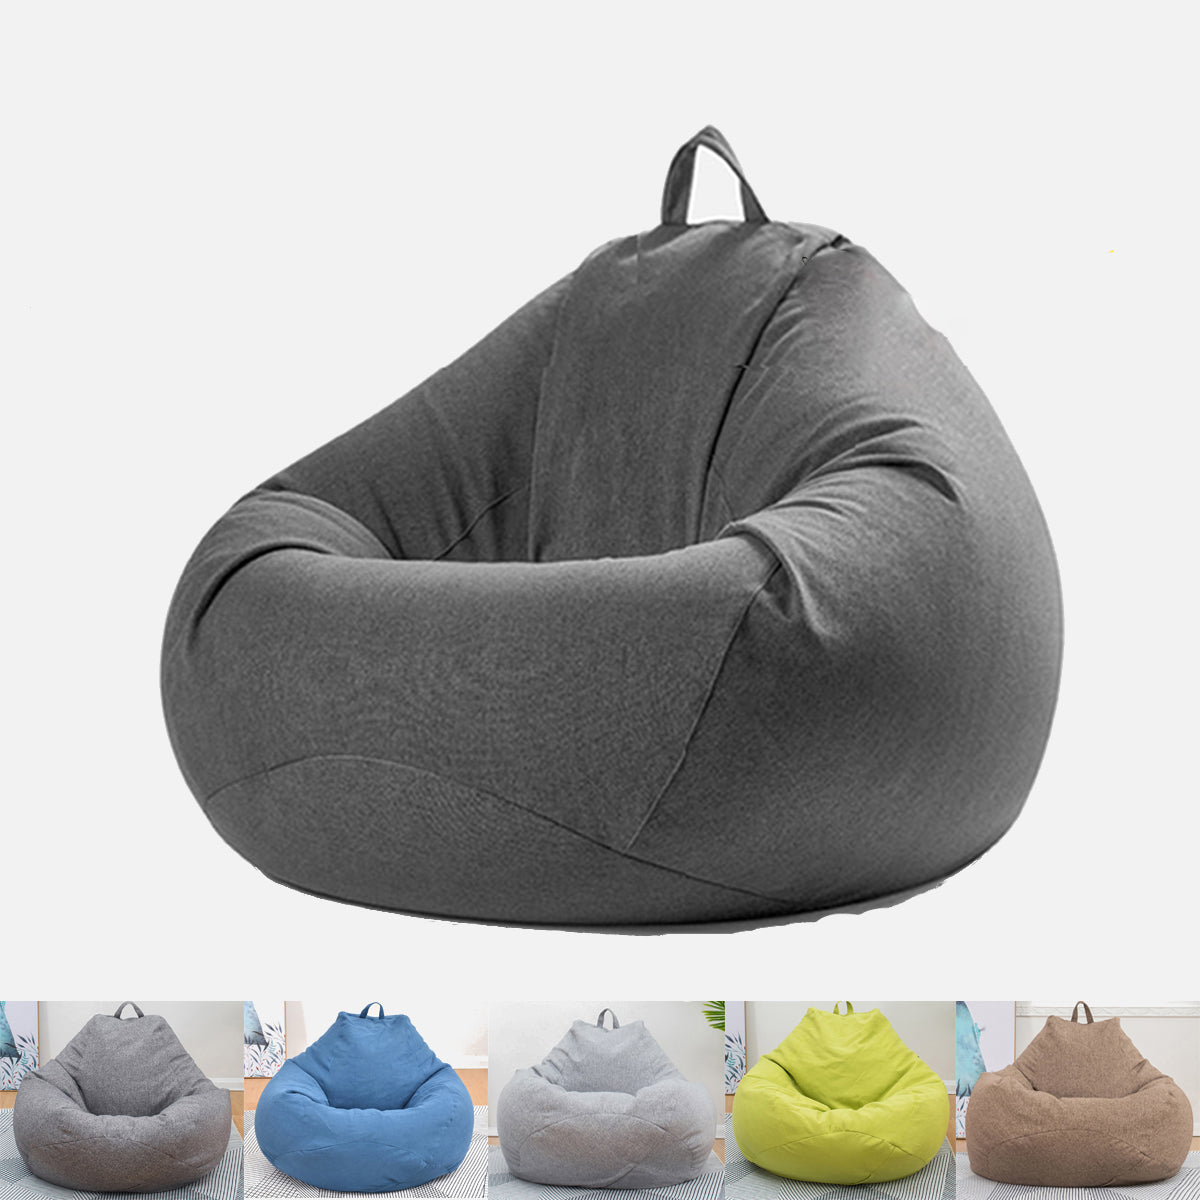 HomeGal Extra Large Bean Bag Chair Cover Lazy Sofa for Indoors and Outdoors